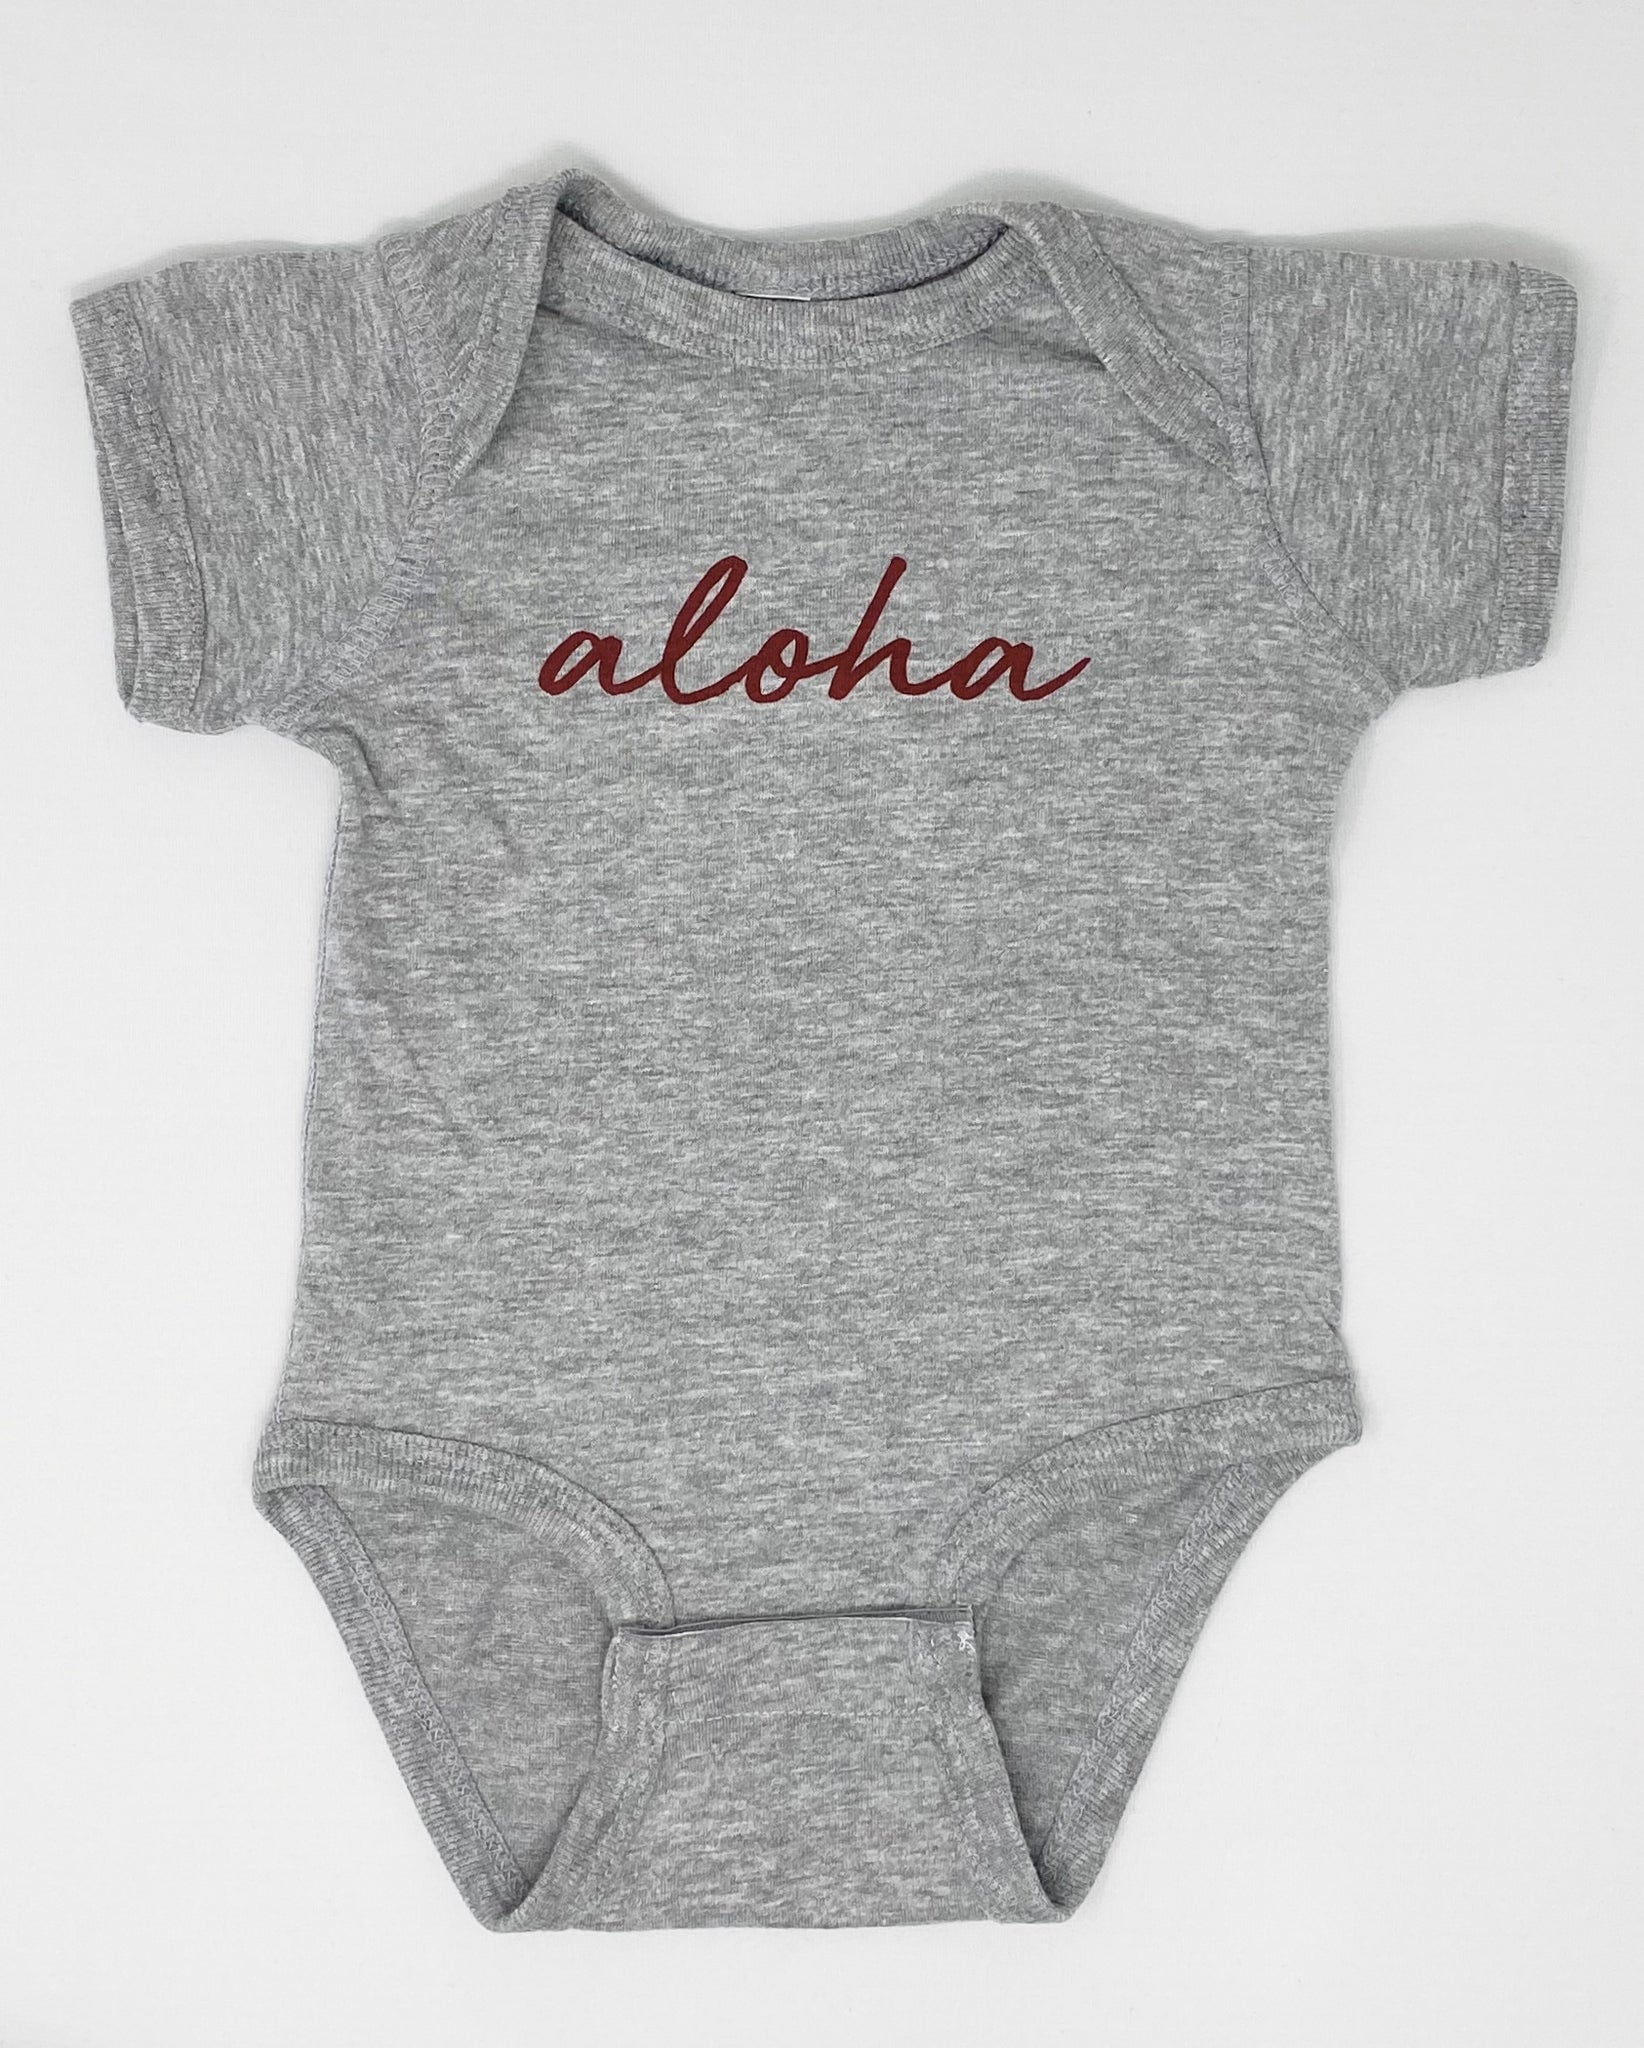 Aloha Onesie in Light Heather Grey